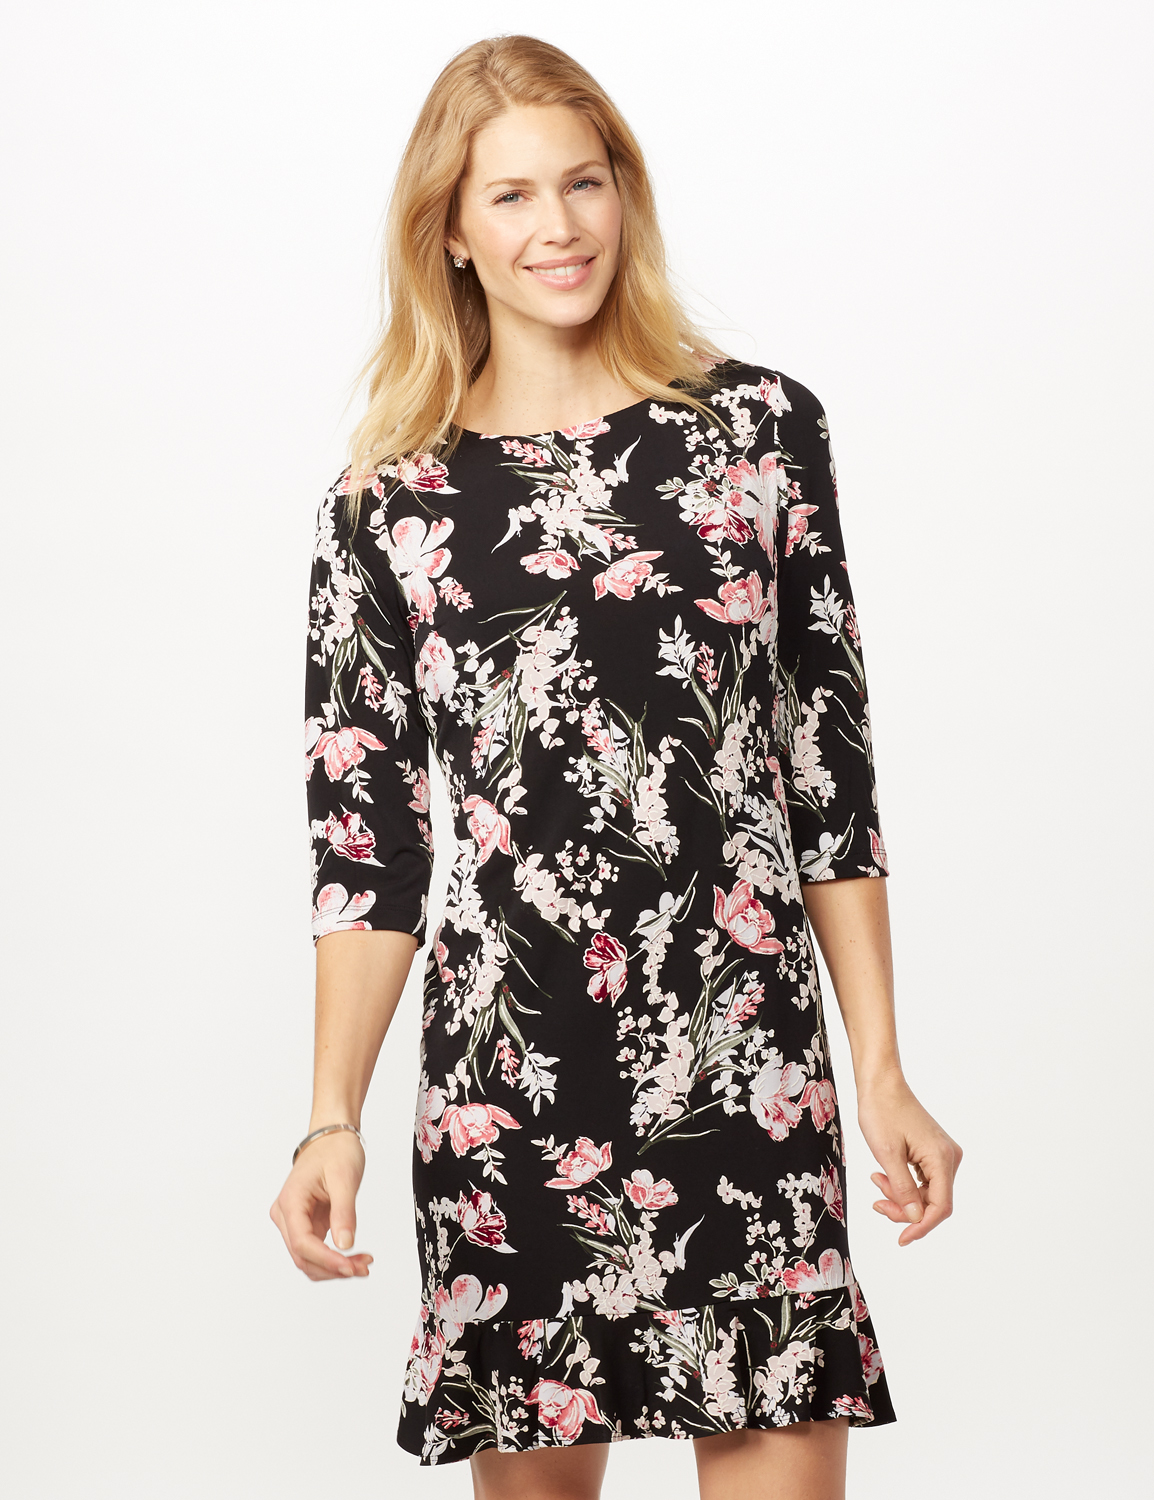 Floral Puff ITY Dress with Flounce Hem -Black/blush - Front